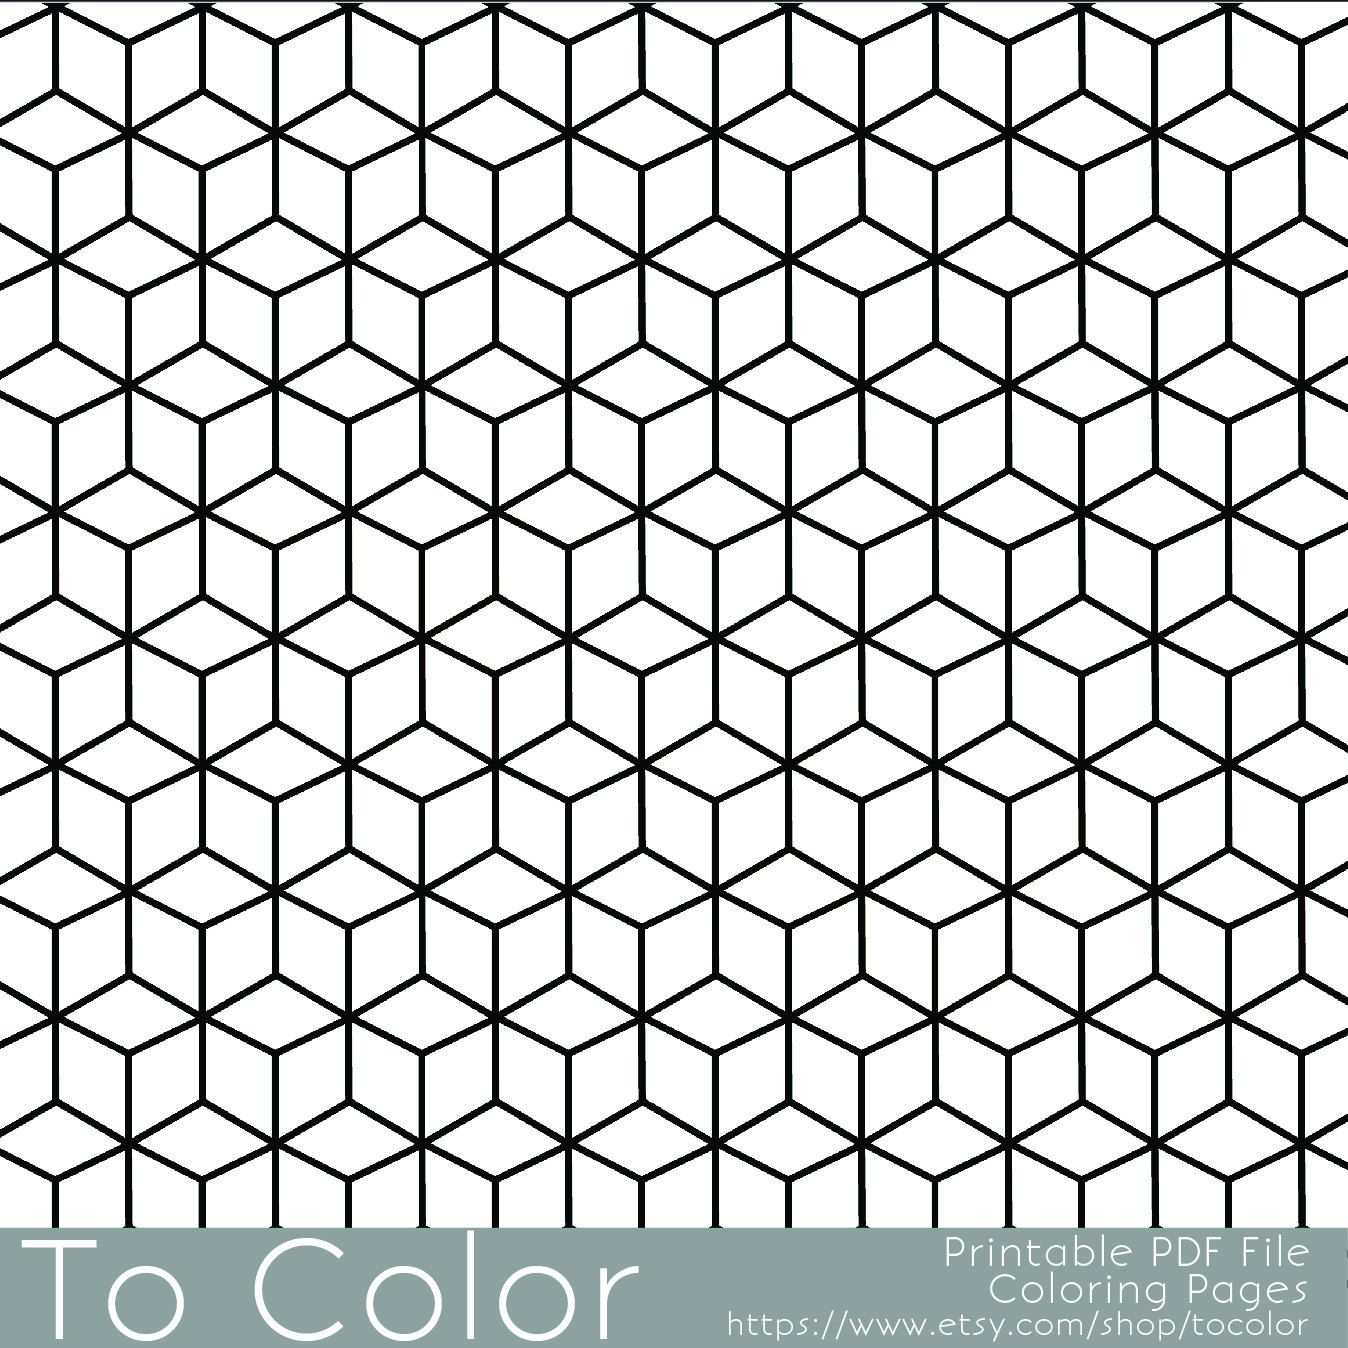 Colouring pages geometric patterns - Printable Coloring Pages For Adults Geometric Repeating Pattern Pdf Jpg Instant Download Coloring Book Coloring Sheet Grown Ups